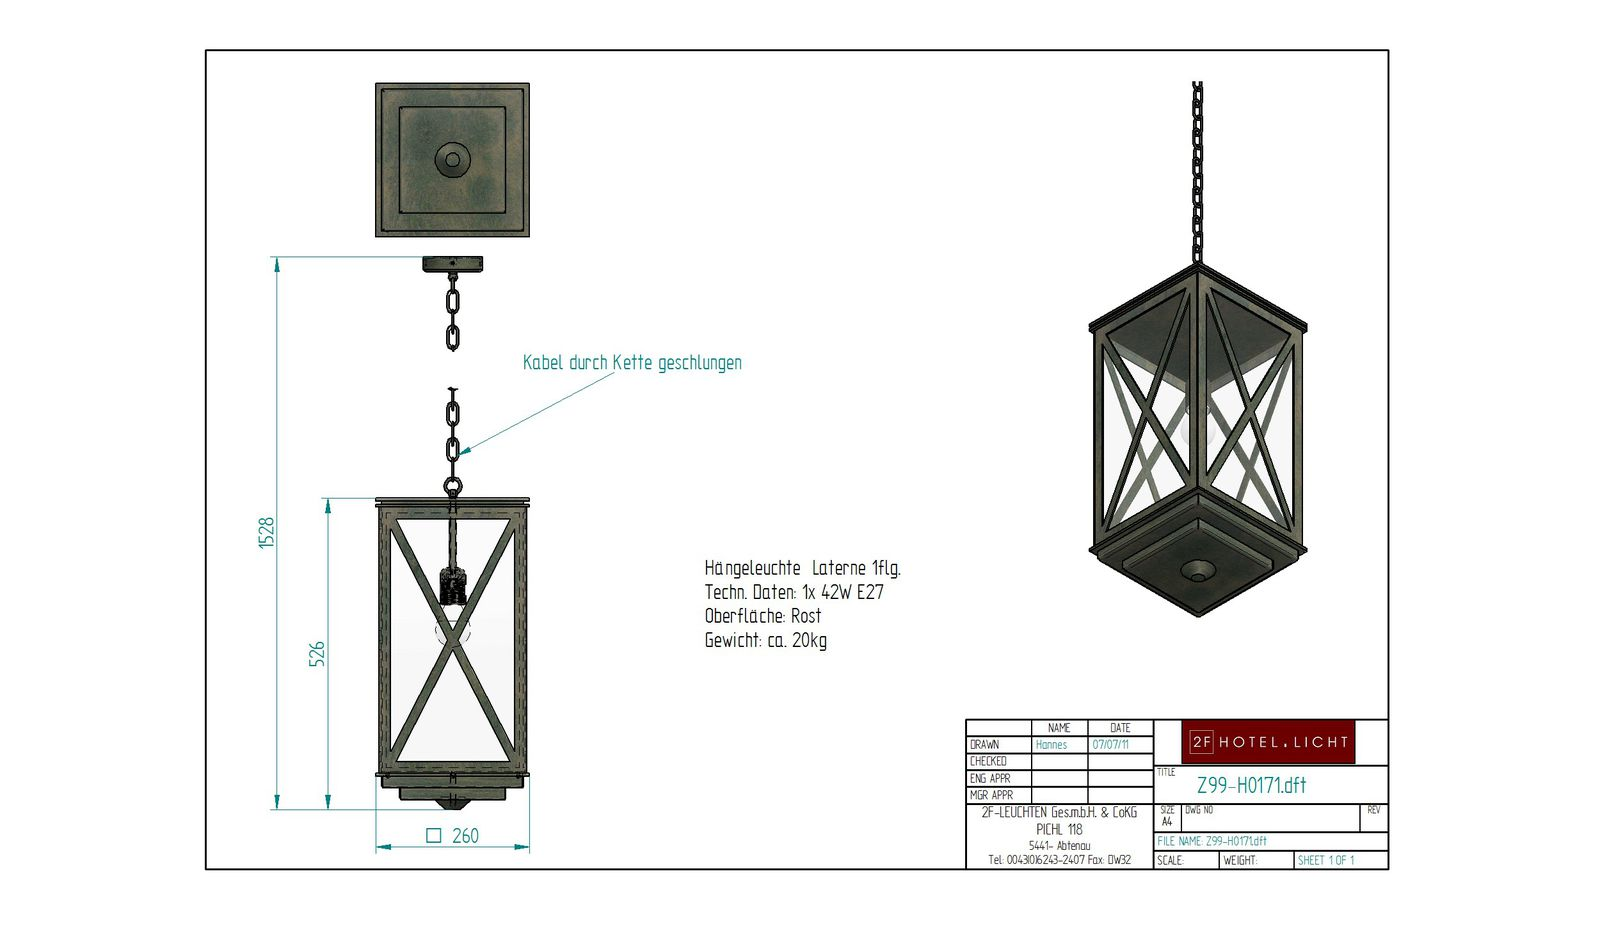 Pendant lamp, lantern, lenght=260mm, wide=260mm, height=1528, surface/colour= rust/black, techn. details: 1xE27, 42W clear glass